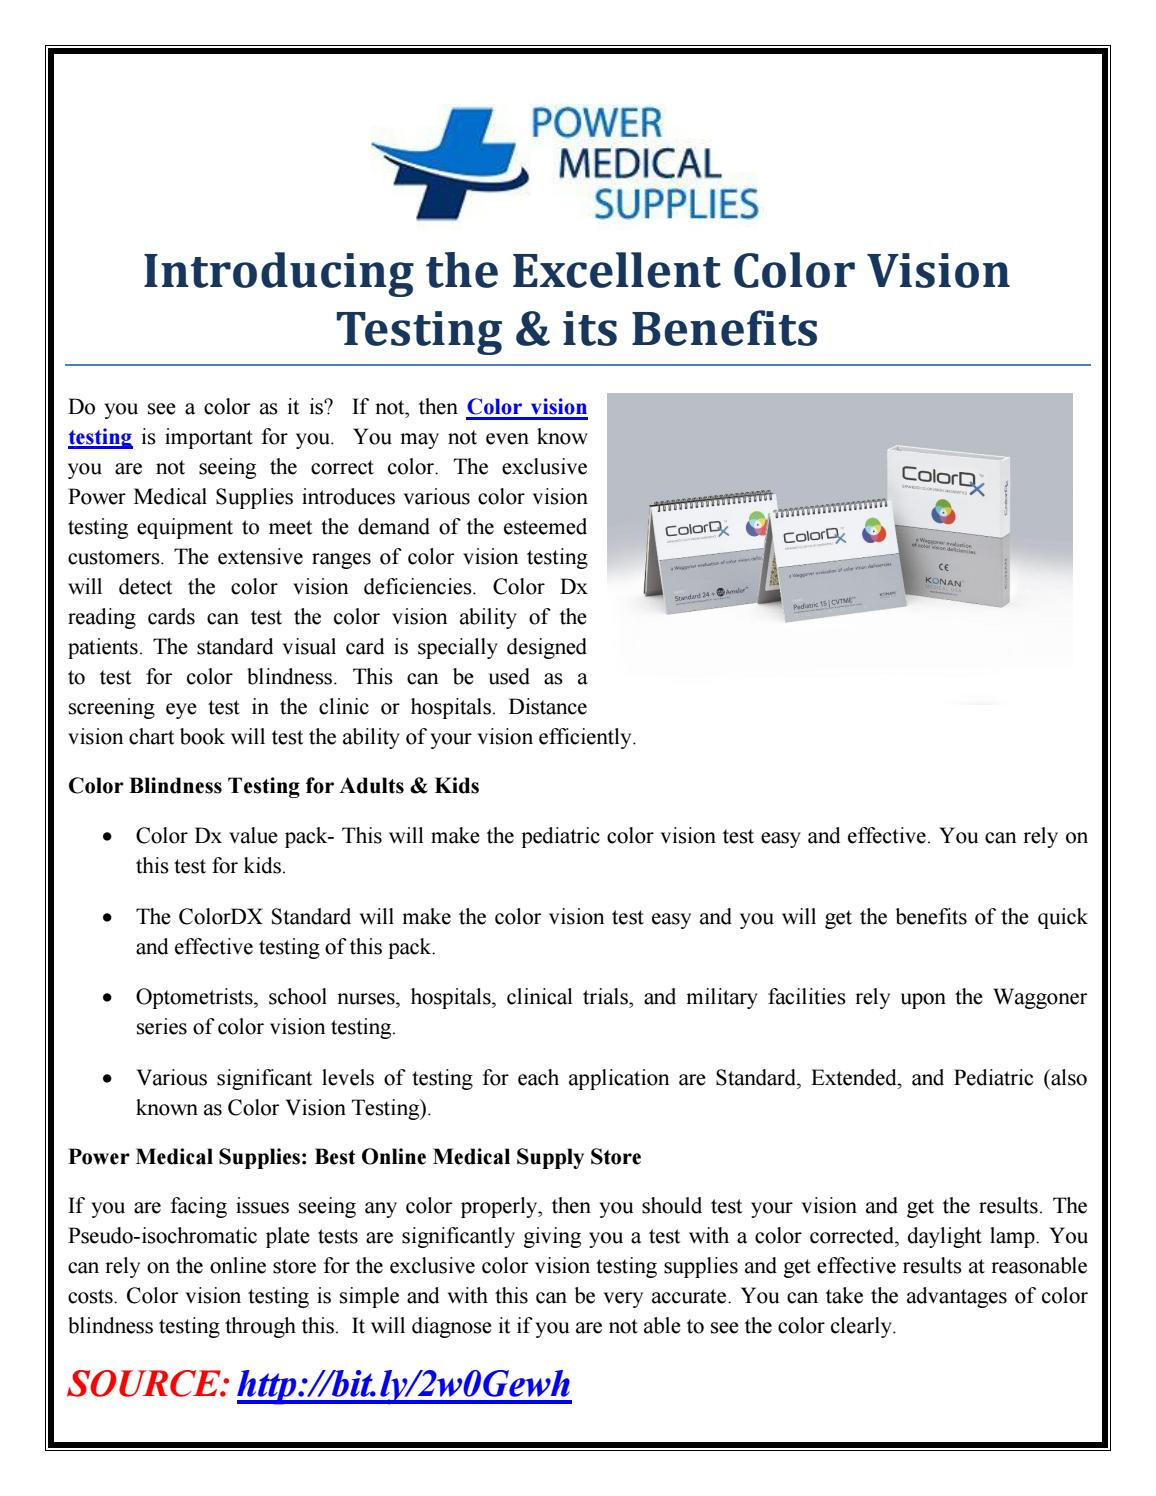 Introducing the Excellent Color Vision Testing & its Benefits by